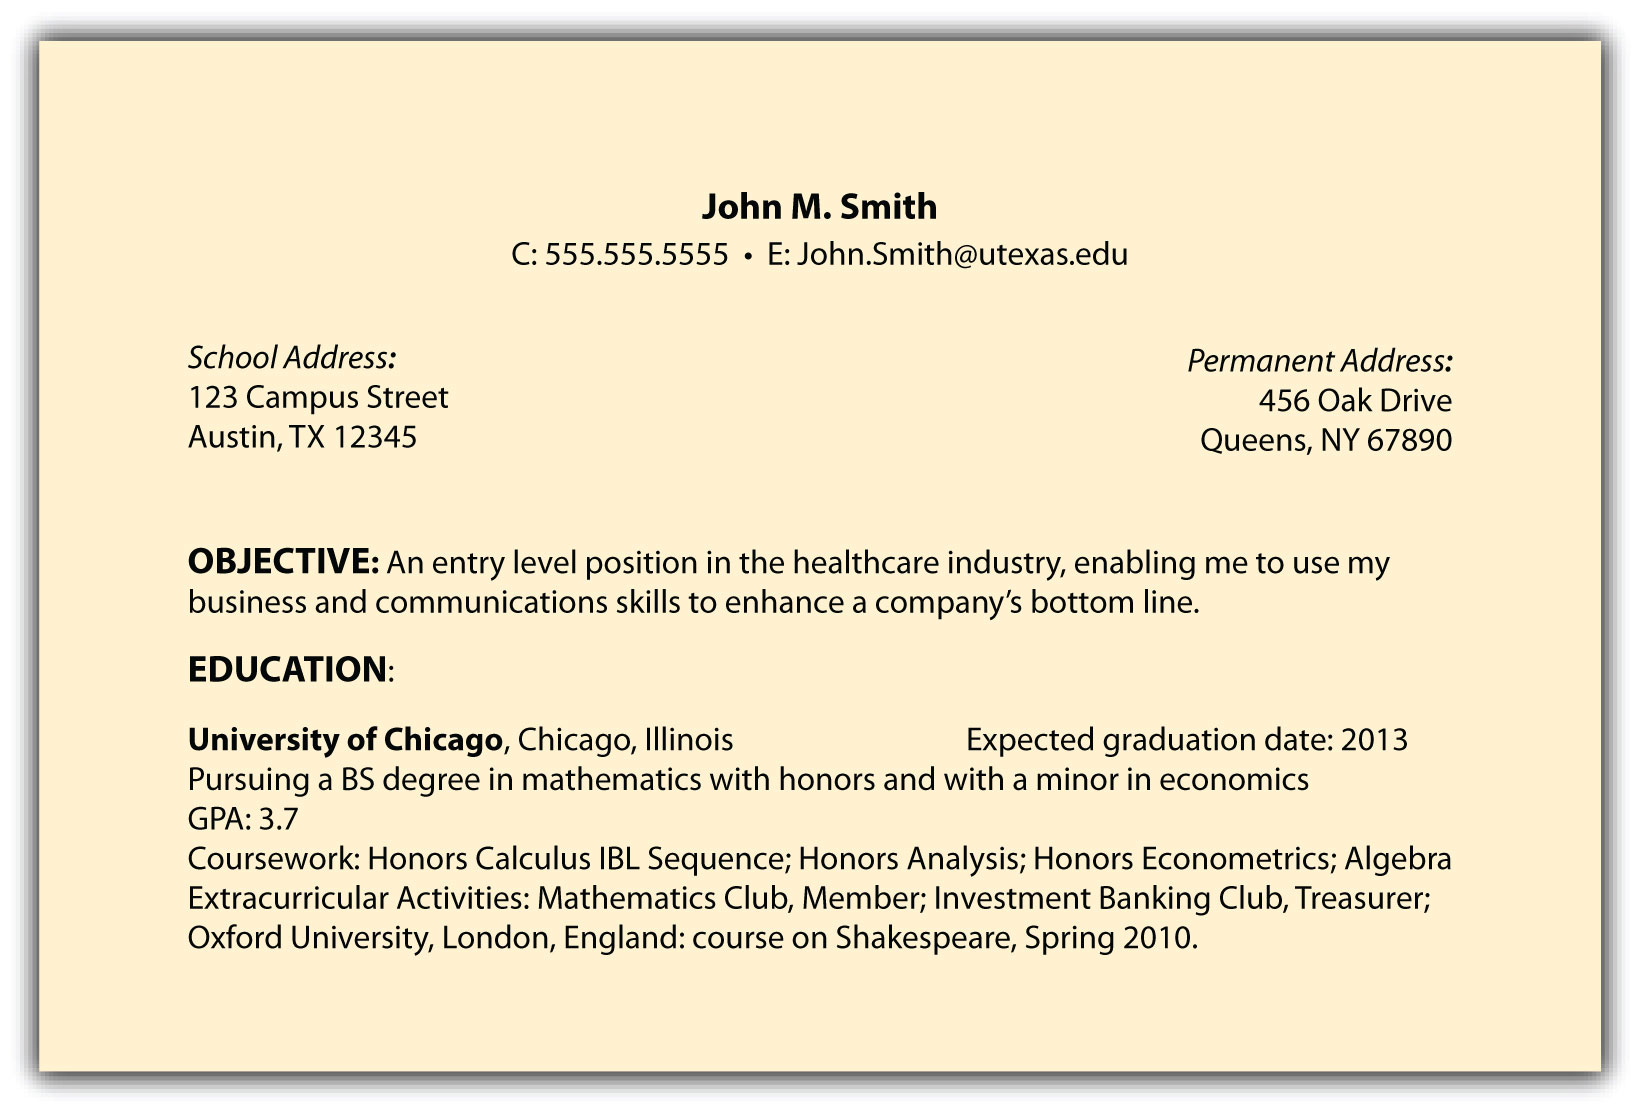 Resume Objective And Desired Goals   Engineering Company Profile ...